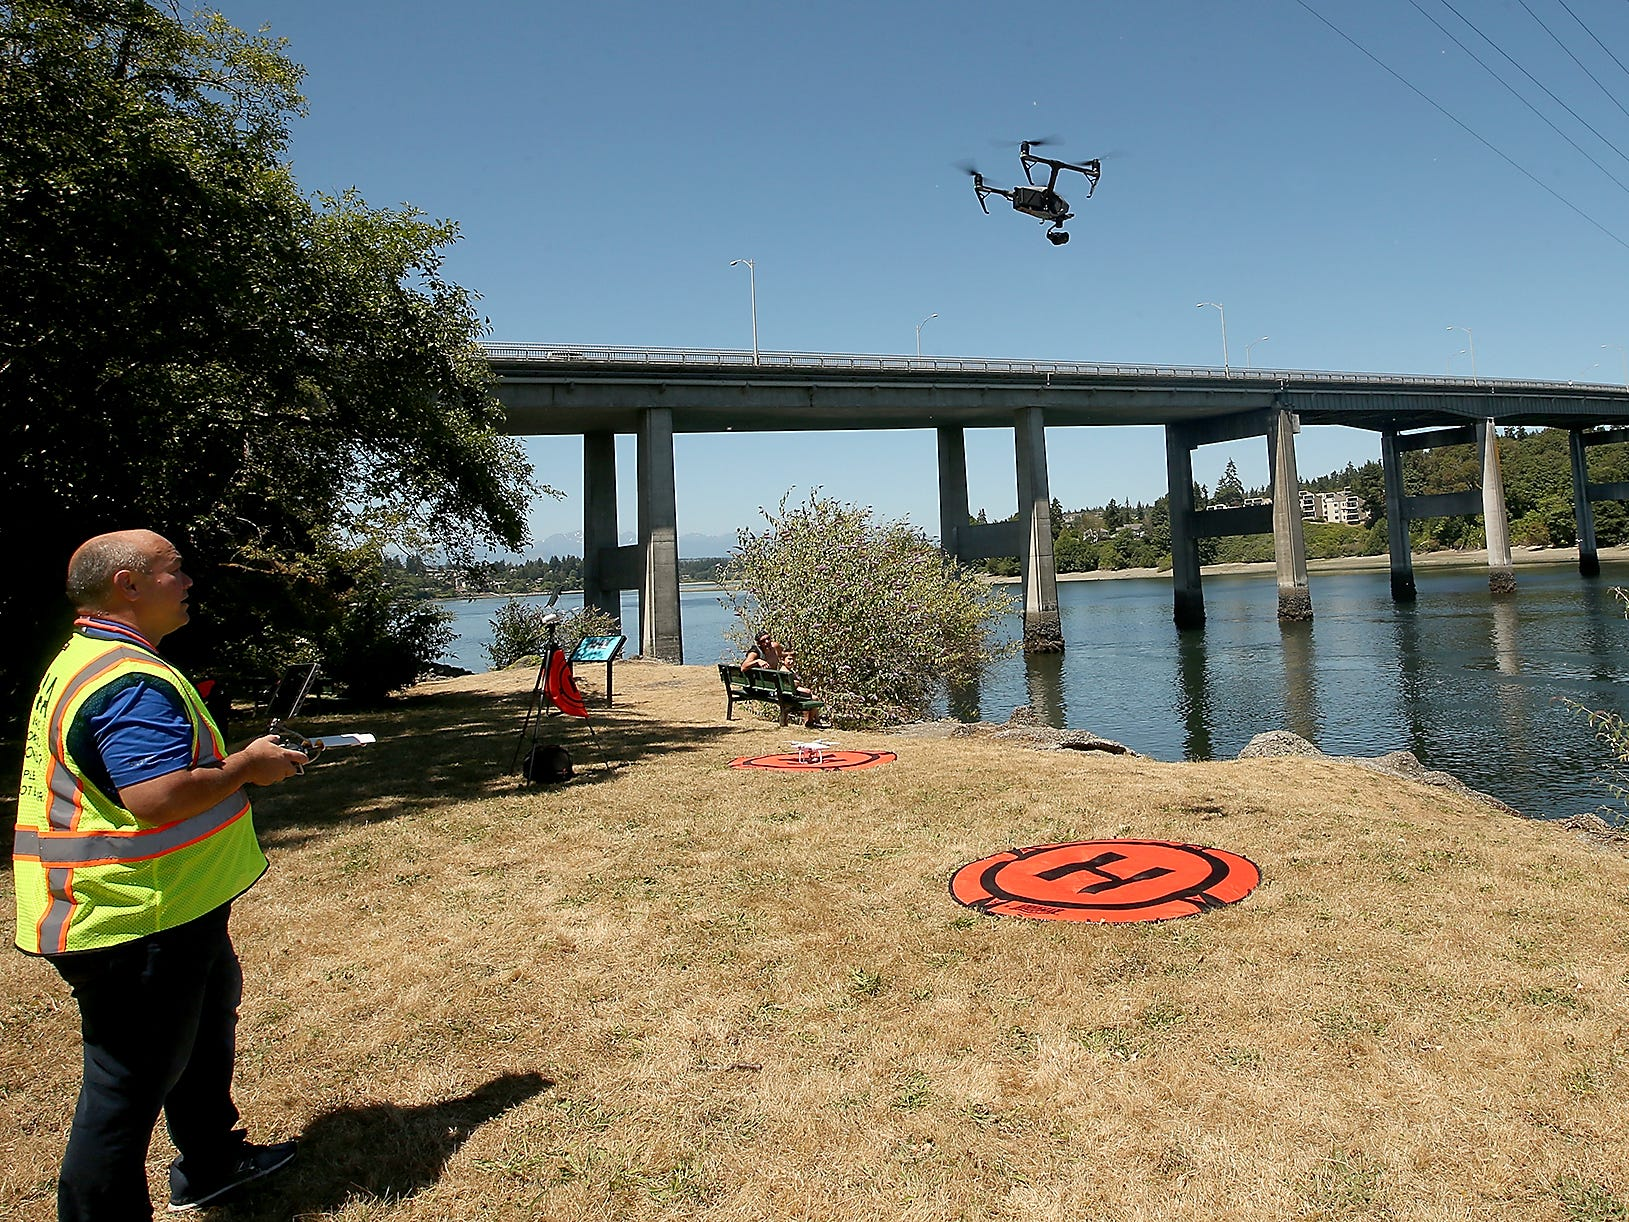 Pacific Northwest Aerial Vision, LLC drone operator James Morton (left) pilots his drone off the landing pad as Sablehawk Drone Inspections pilot Jeff Fuchs (right) works as his spotter while the two fly their drones at Lower Roto Vista Park in Bremerton on Friday, July 13, 2018.